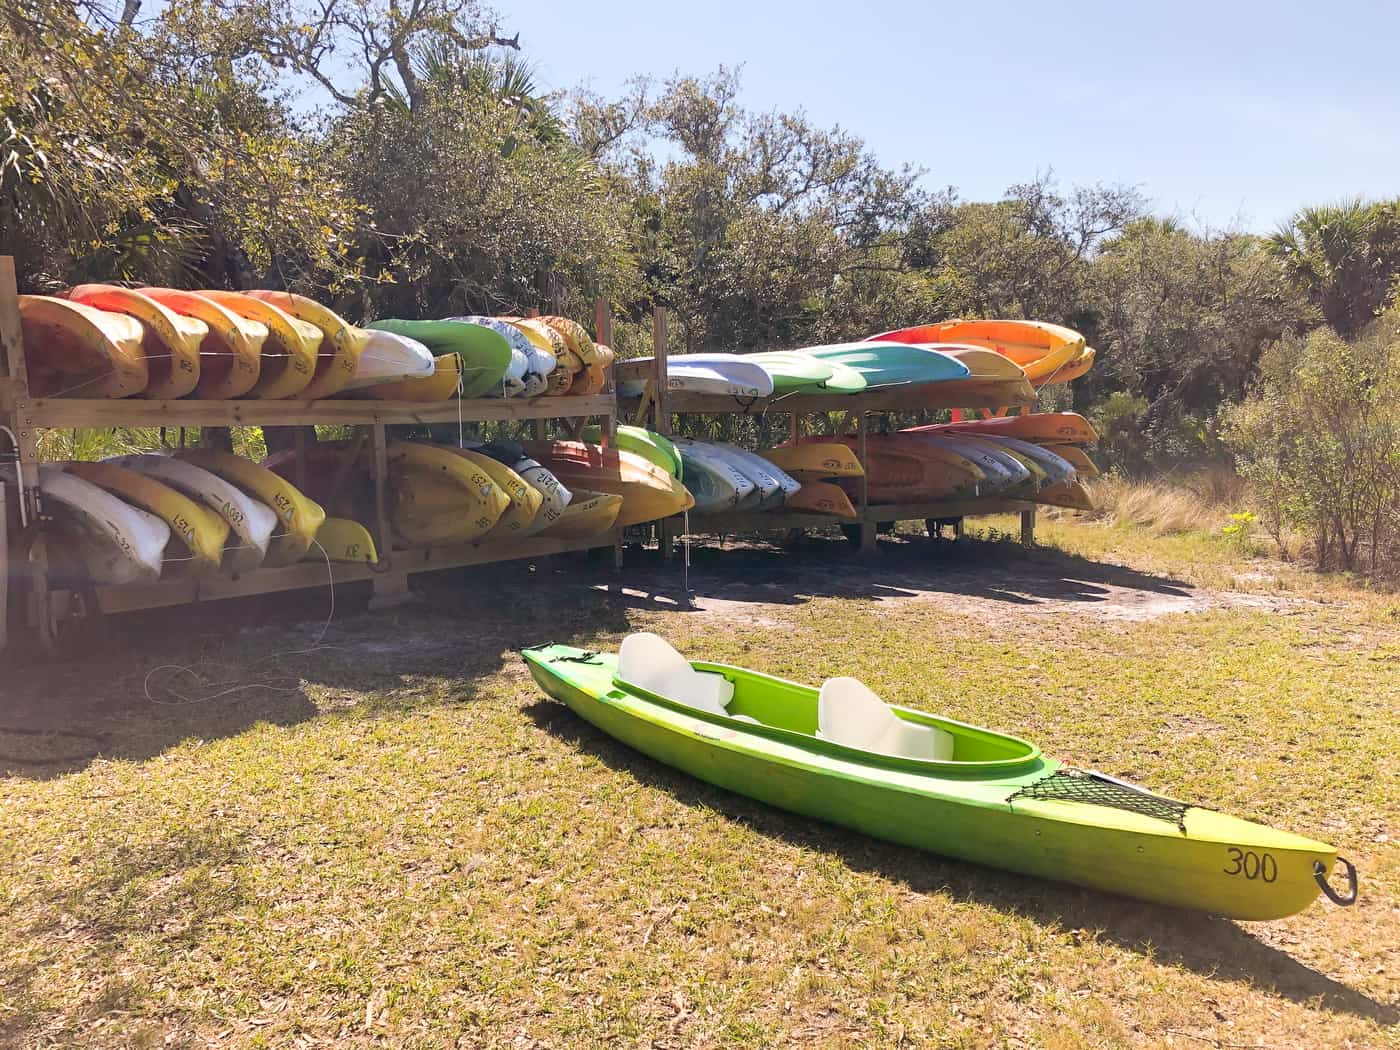 Kayaks are available for rental at Werner-Boyce Salt Springs State Park in Port Richey, FL #Florida #FL #FLStateParks #CornacopiaInThePark #LoveFL